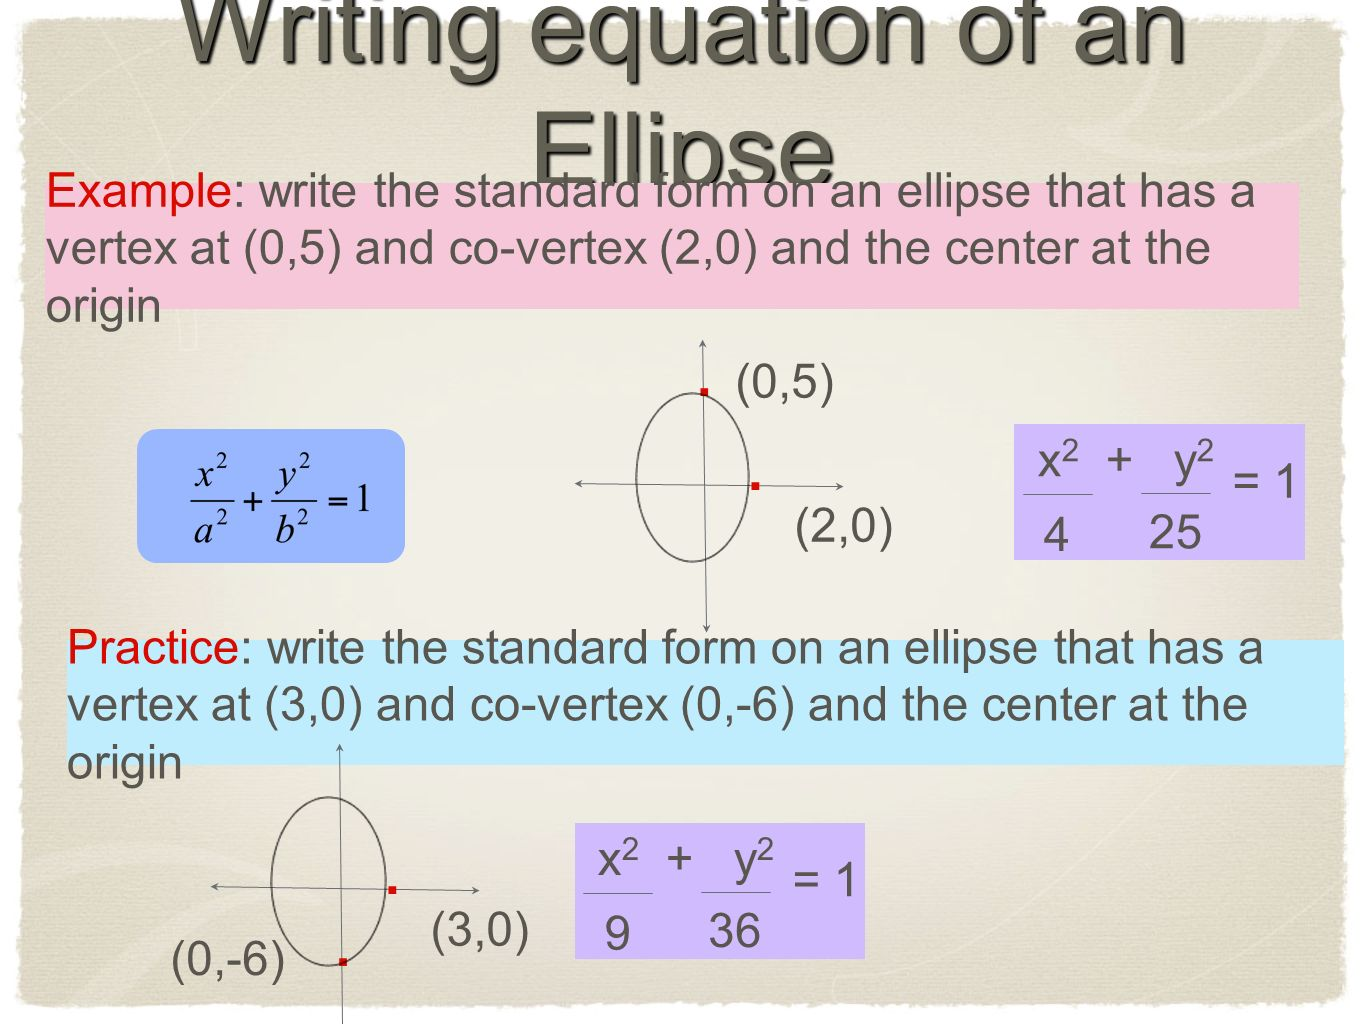 Writing equation of an Ellipse Example: write the standard form on an ellipse that has a vertex at (0,5) and co-vertex (2,0) and the center at the origin.